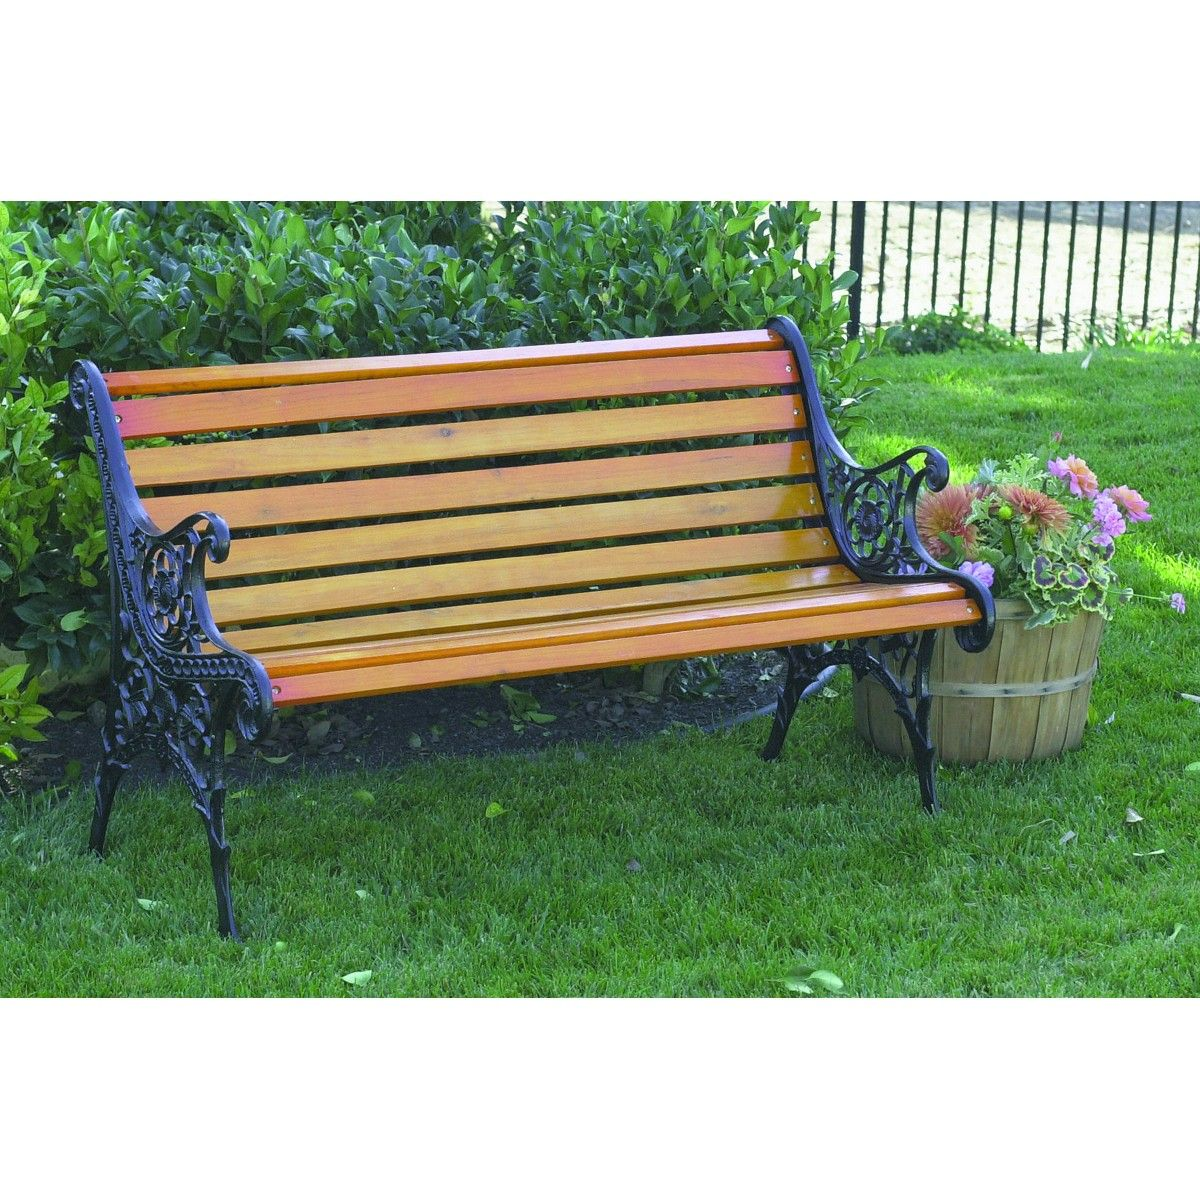 The 12 Slat Park Bench From Harbor Freight Tools Will Add Charm To Your Porch